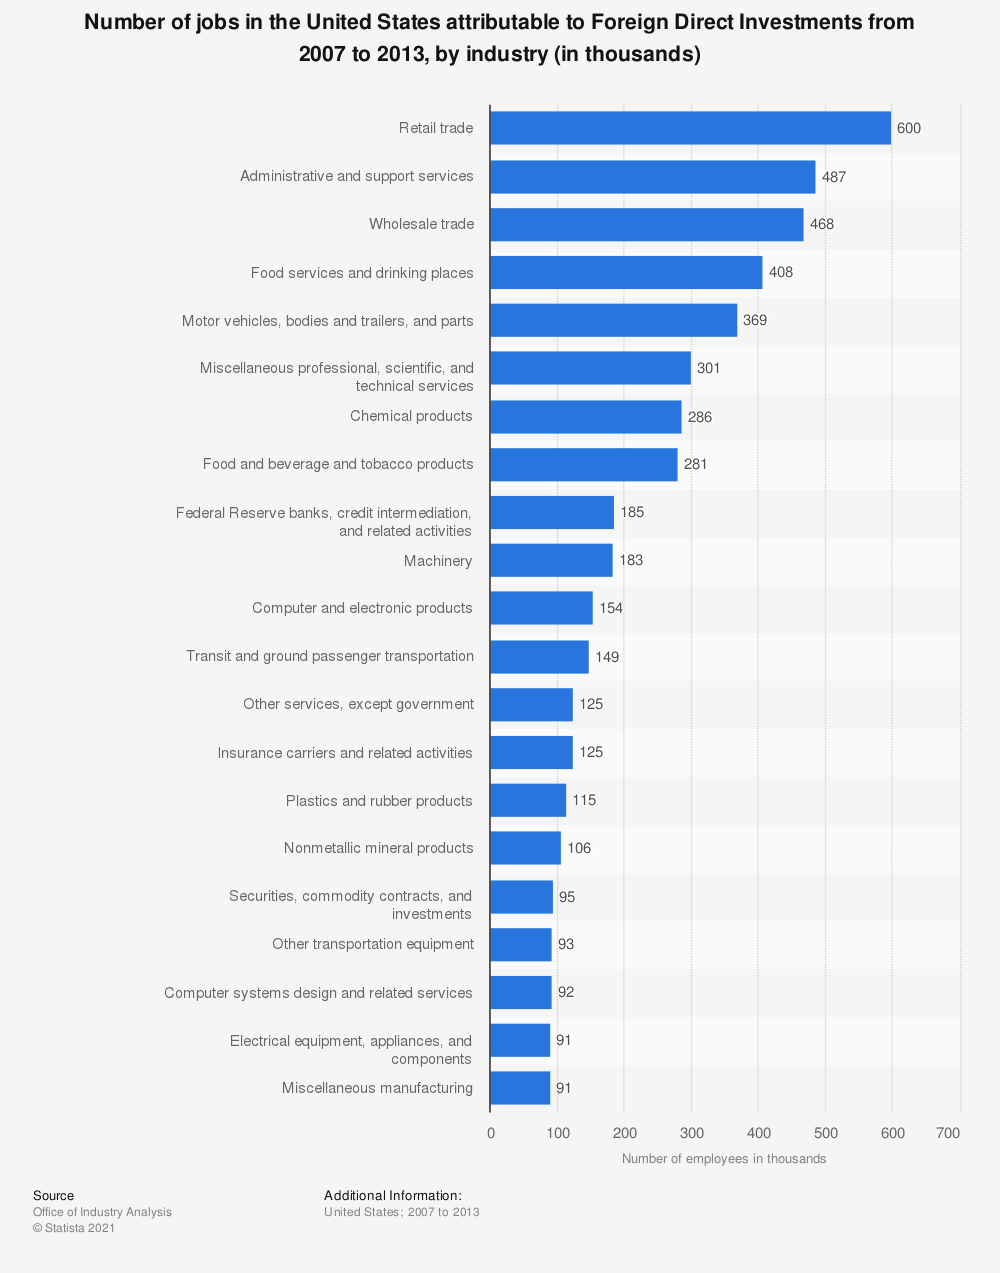 Statistic: Number of jobs in the United States attributable to Foreign Direct Investments from 2007 to 2013, by industry (in thousands) | Statista